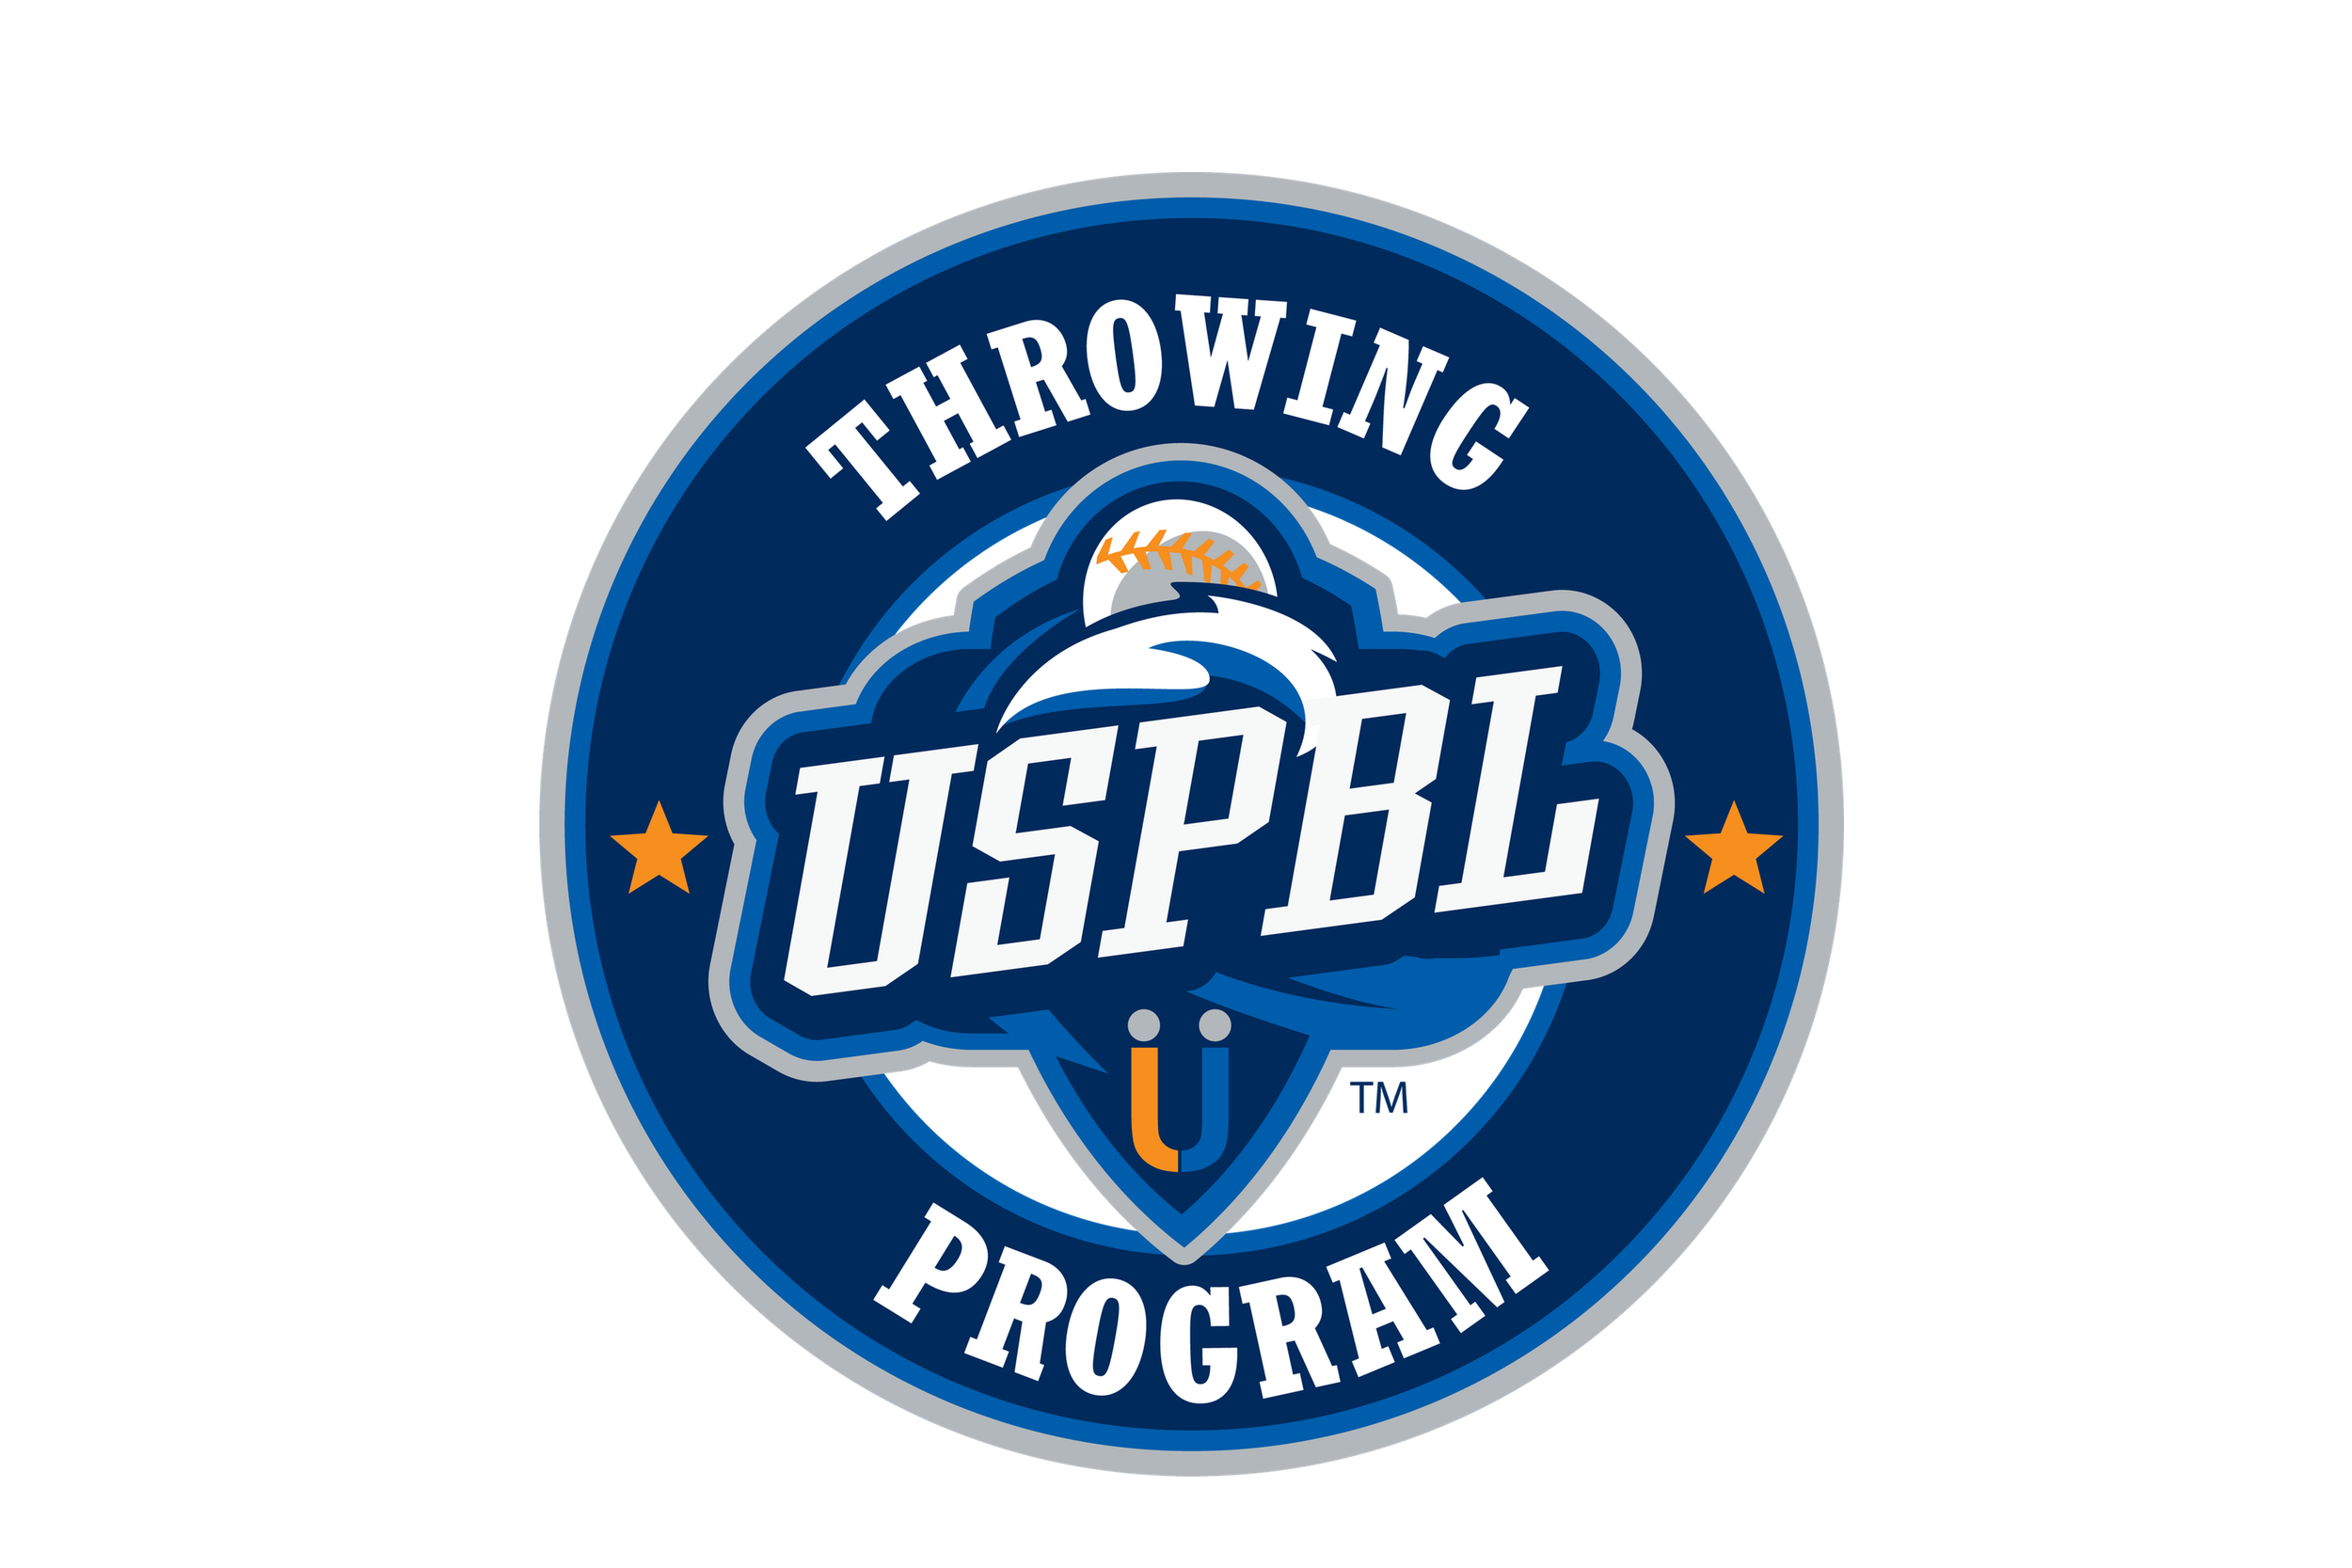 USPBL Throwing Program - The new standard among throwing programs.